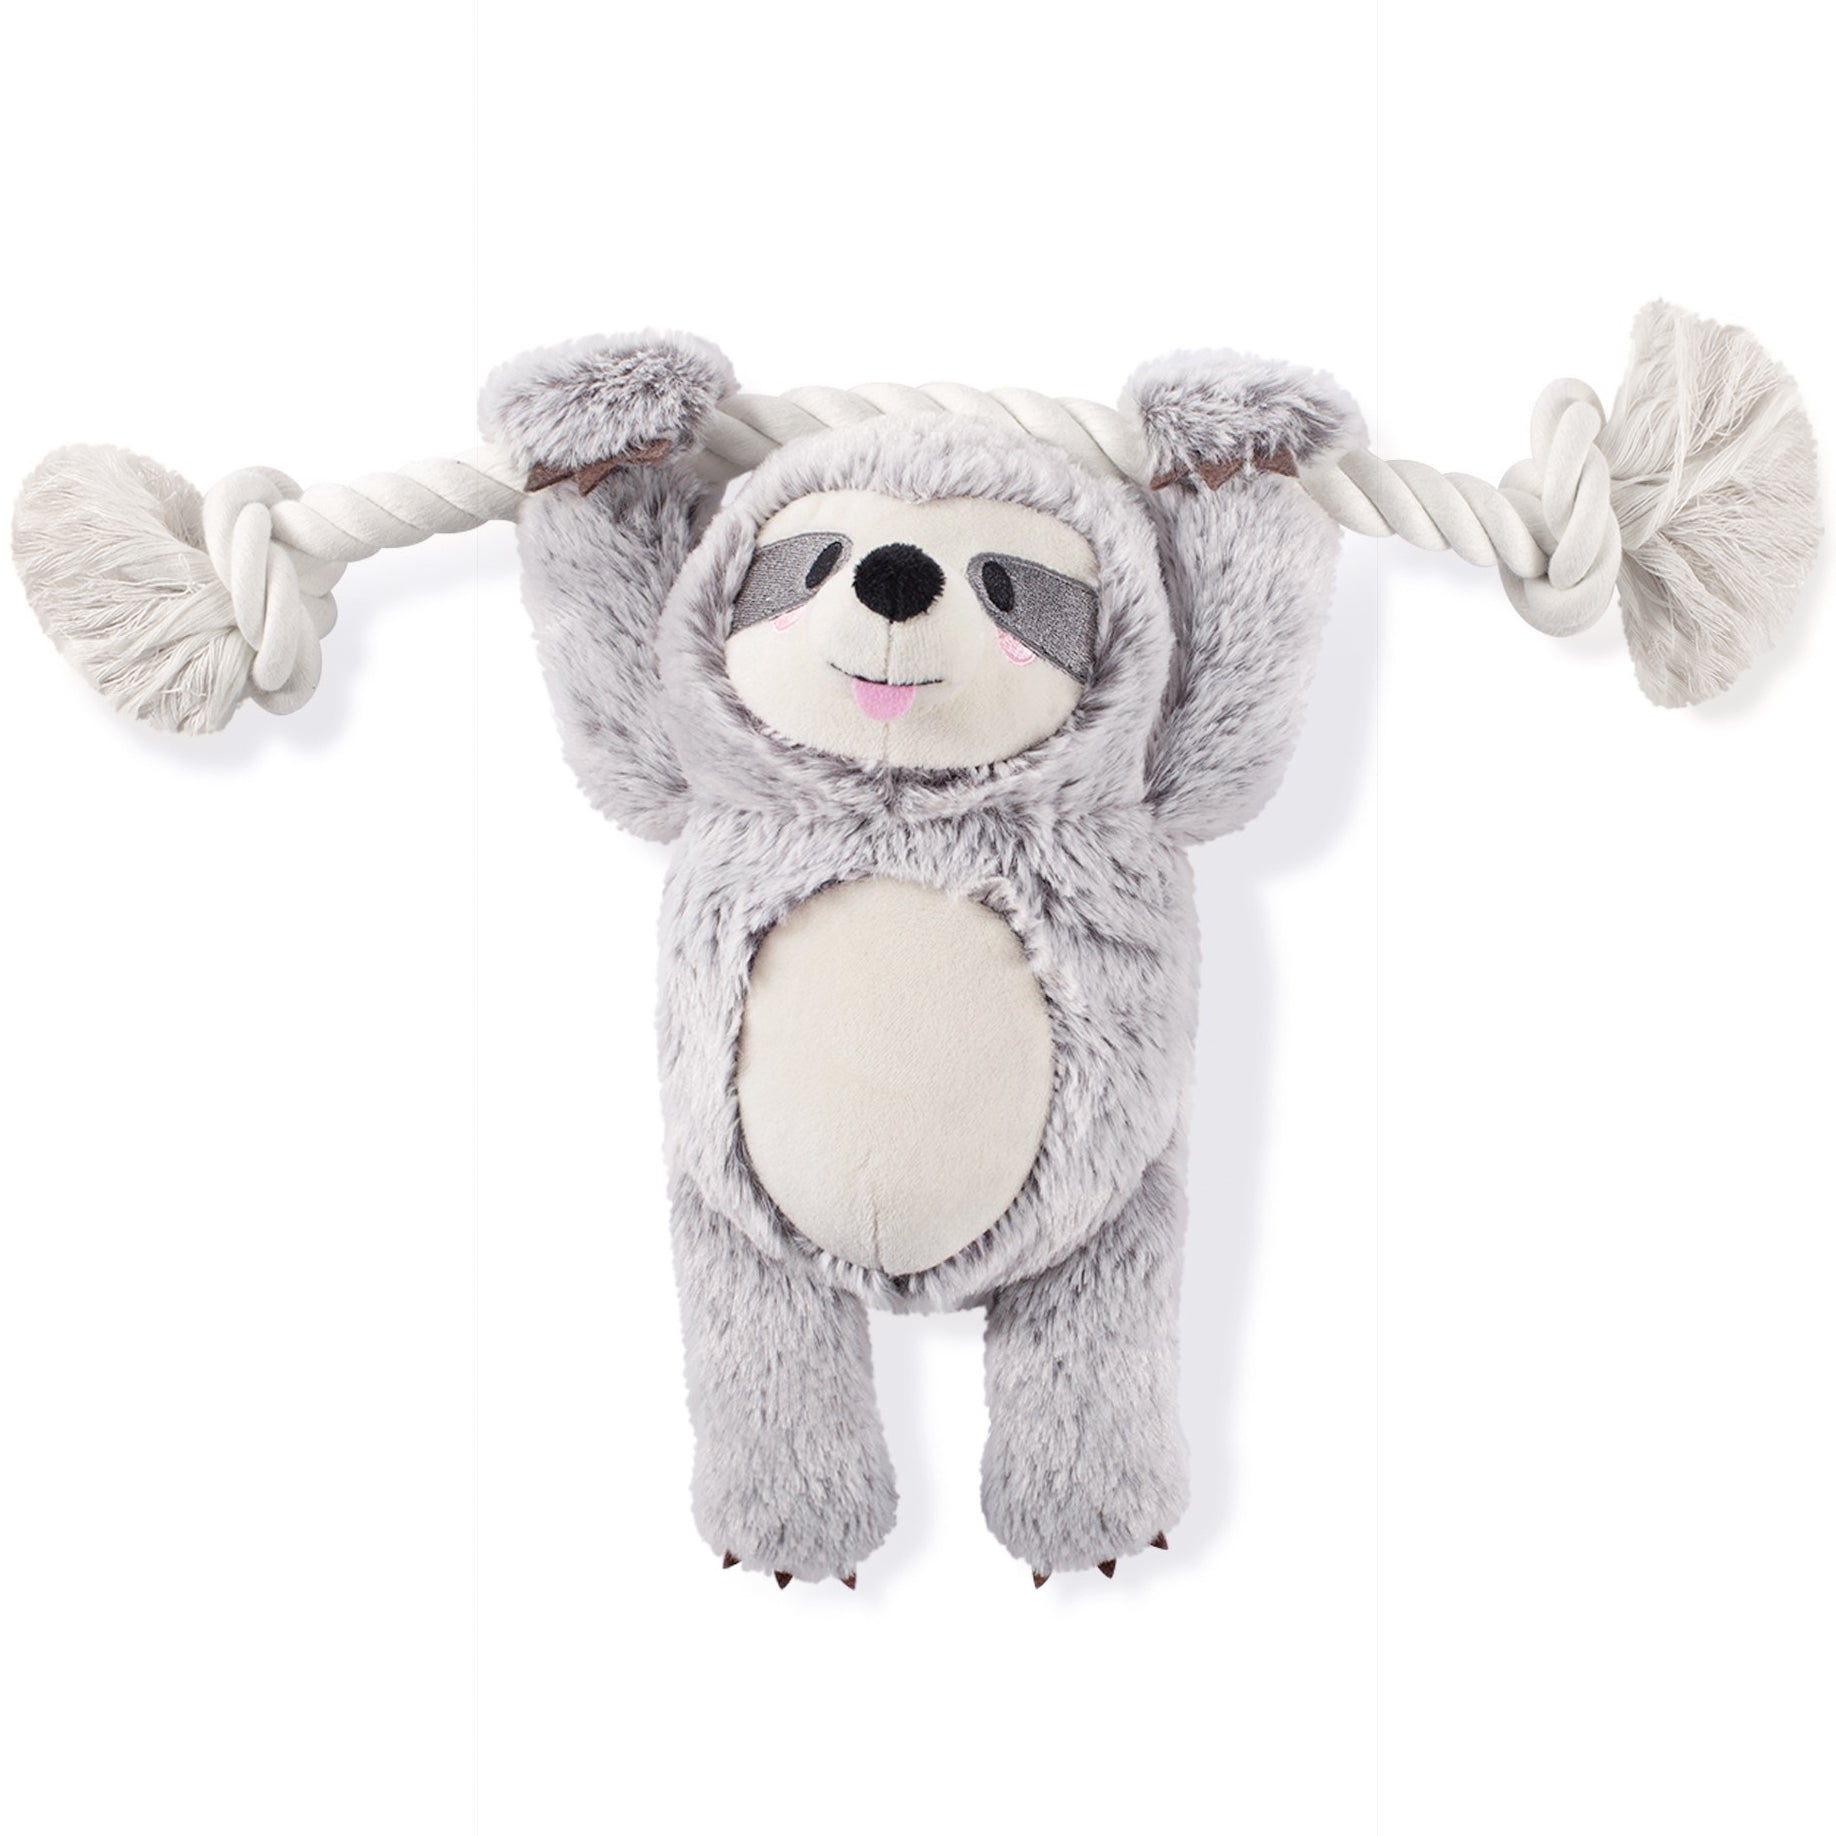 Girlie Sloth Dog Toy